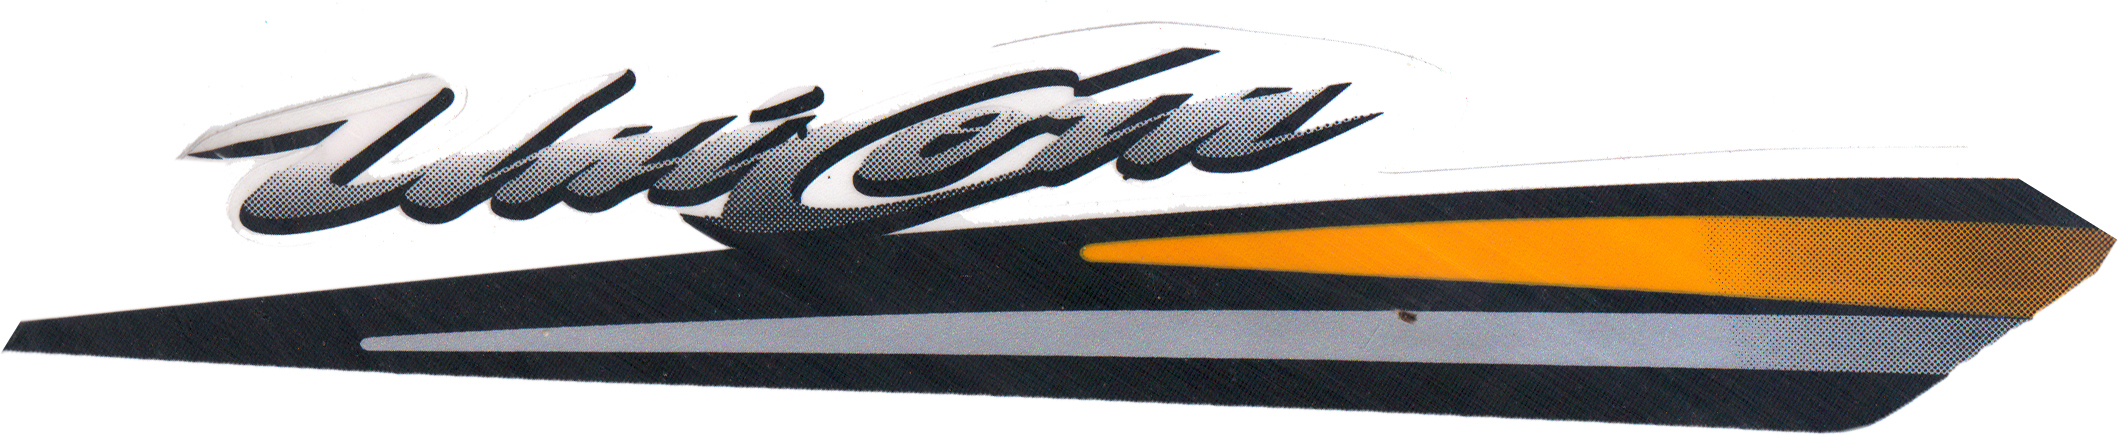 Buy sticker set tail honda unicorn nm zadon on 10 00 discount from safexbikes com motorcycle parts and accessories online shopping